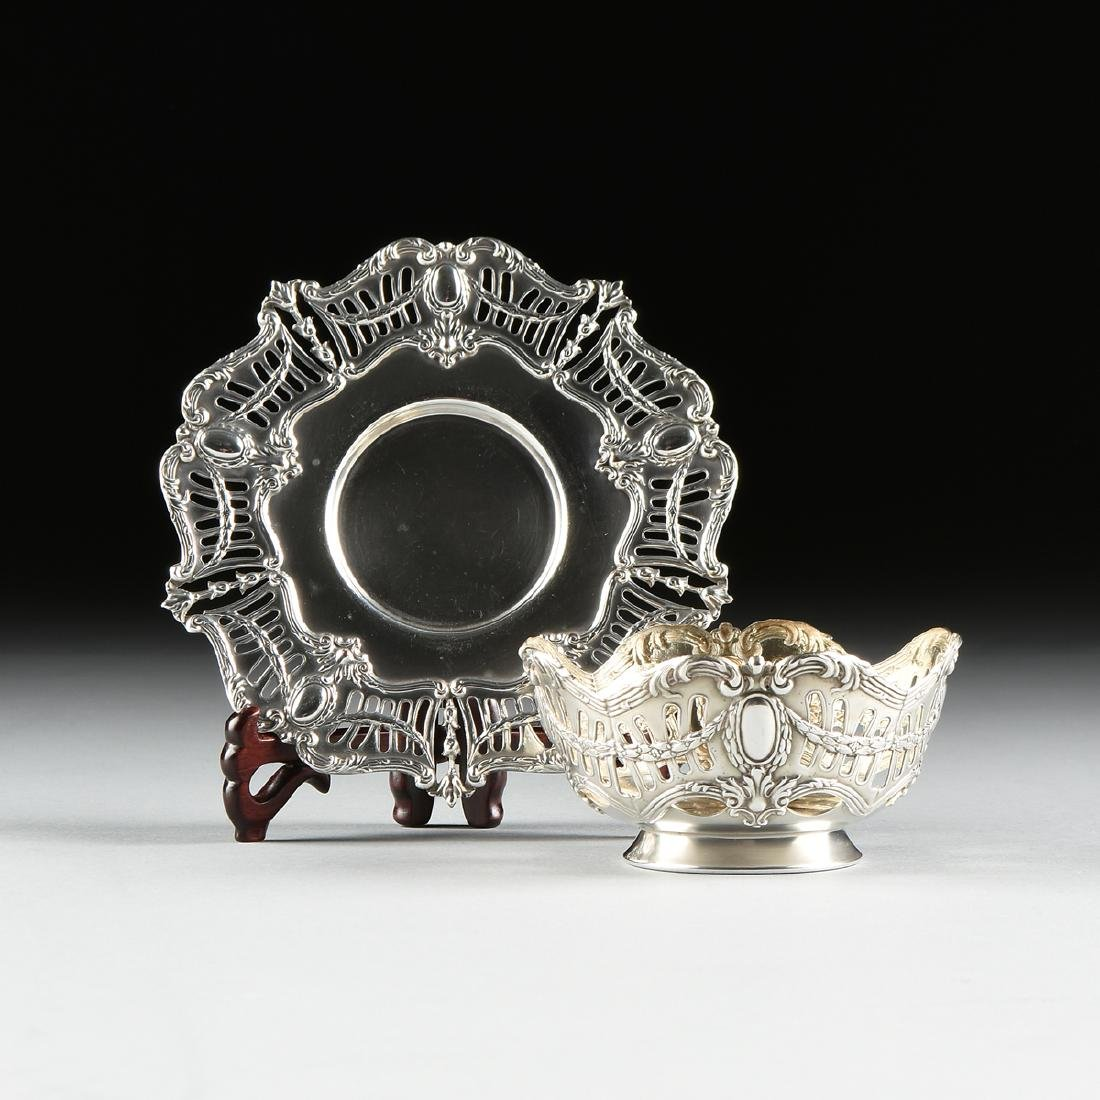 A GROUP OF SIX ENGLISH SILVER PLATED RETICULATED BOWLS